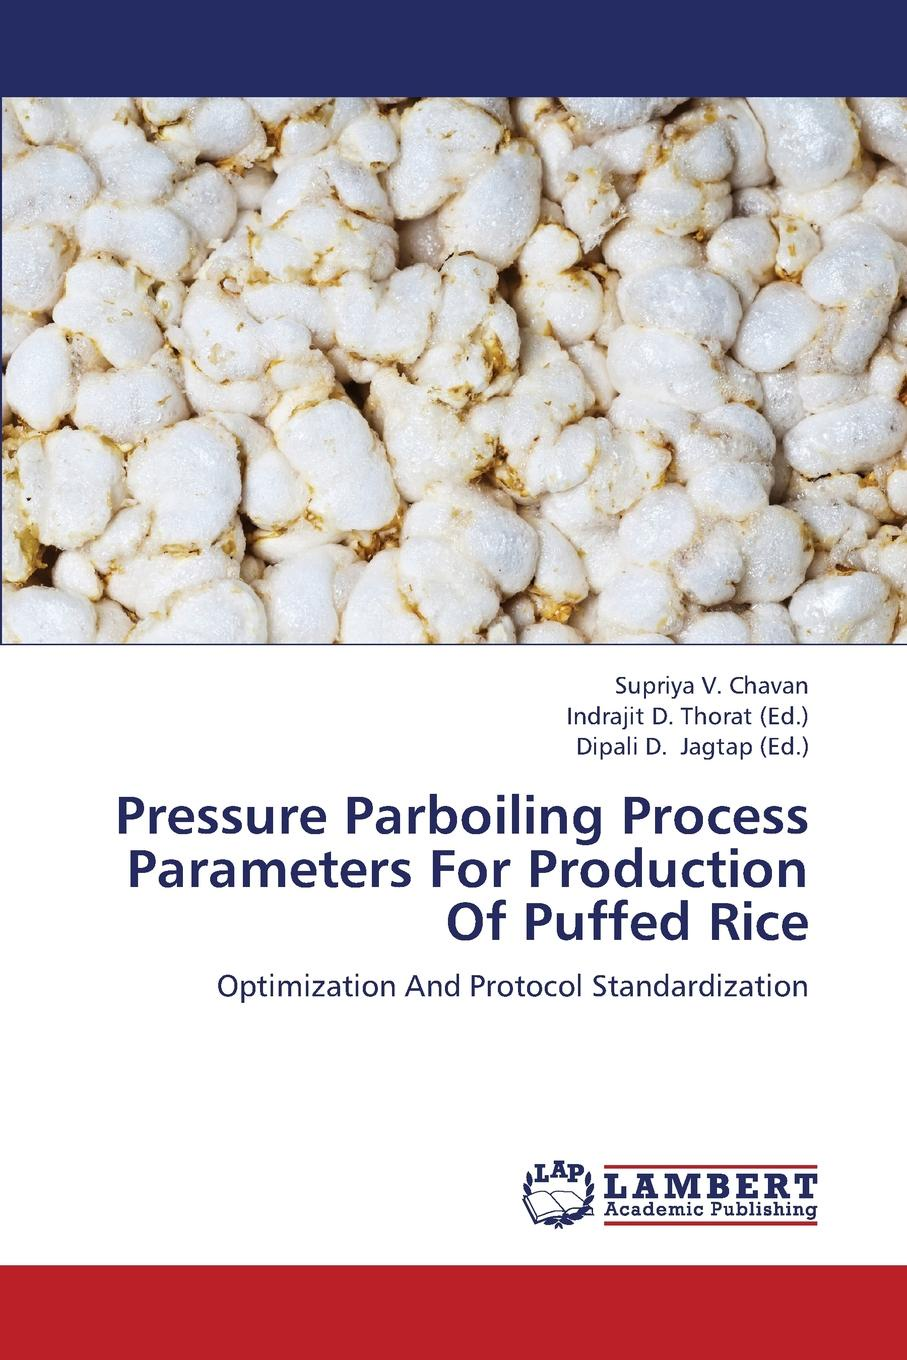 Chavan Supriya V. Pressure Parboiling Process Parameters for Production of Puffed Rice